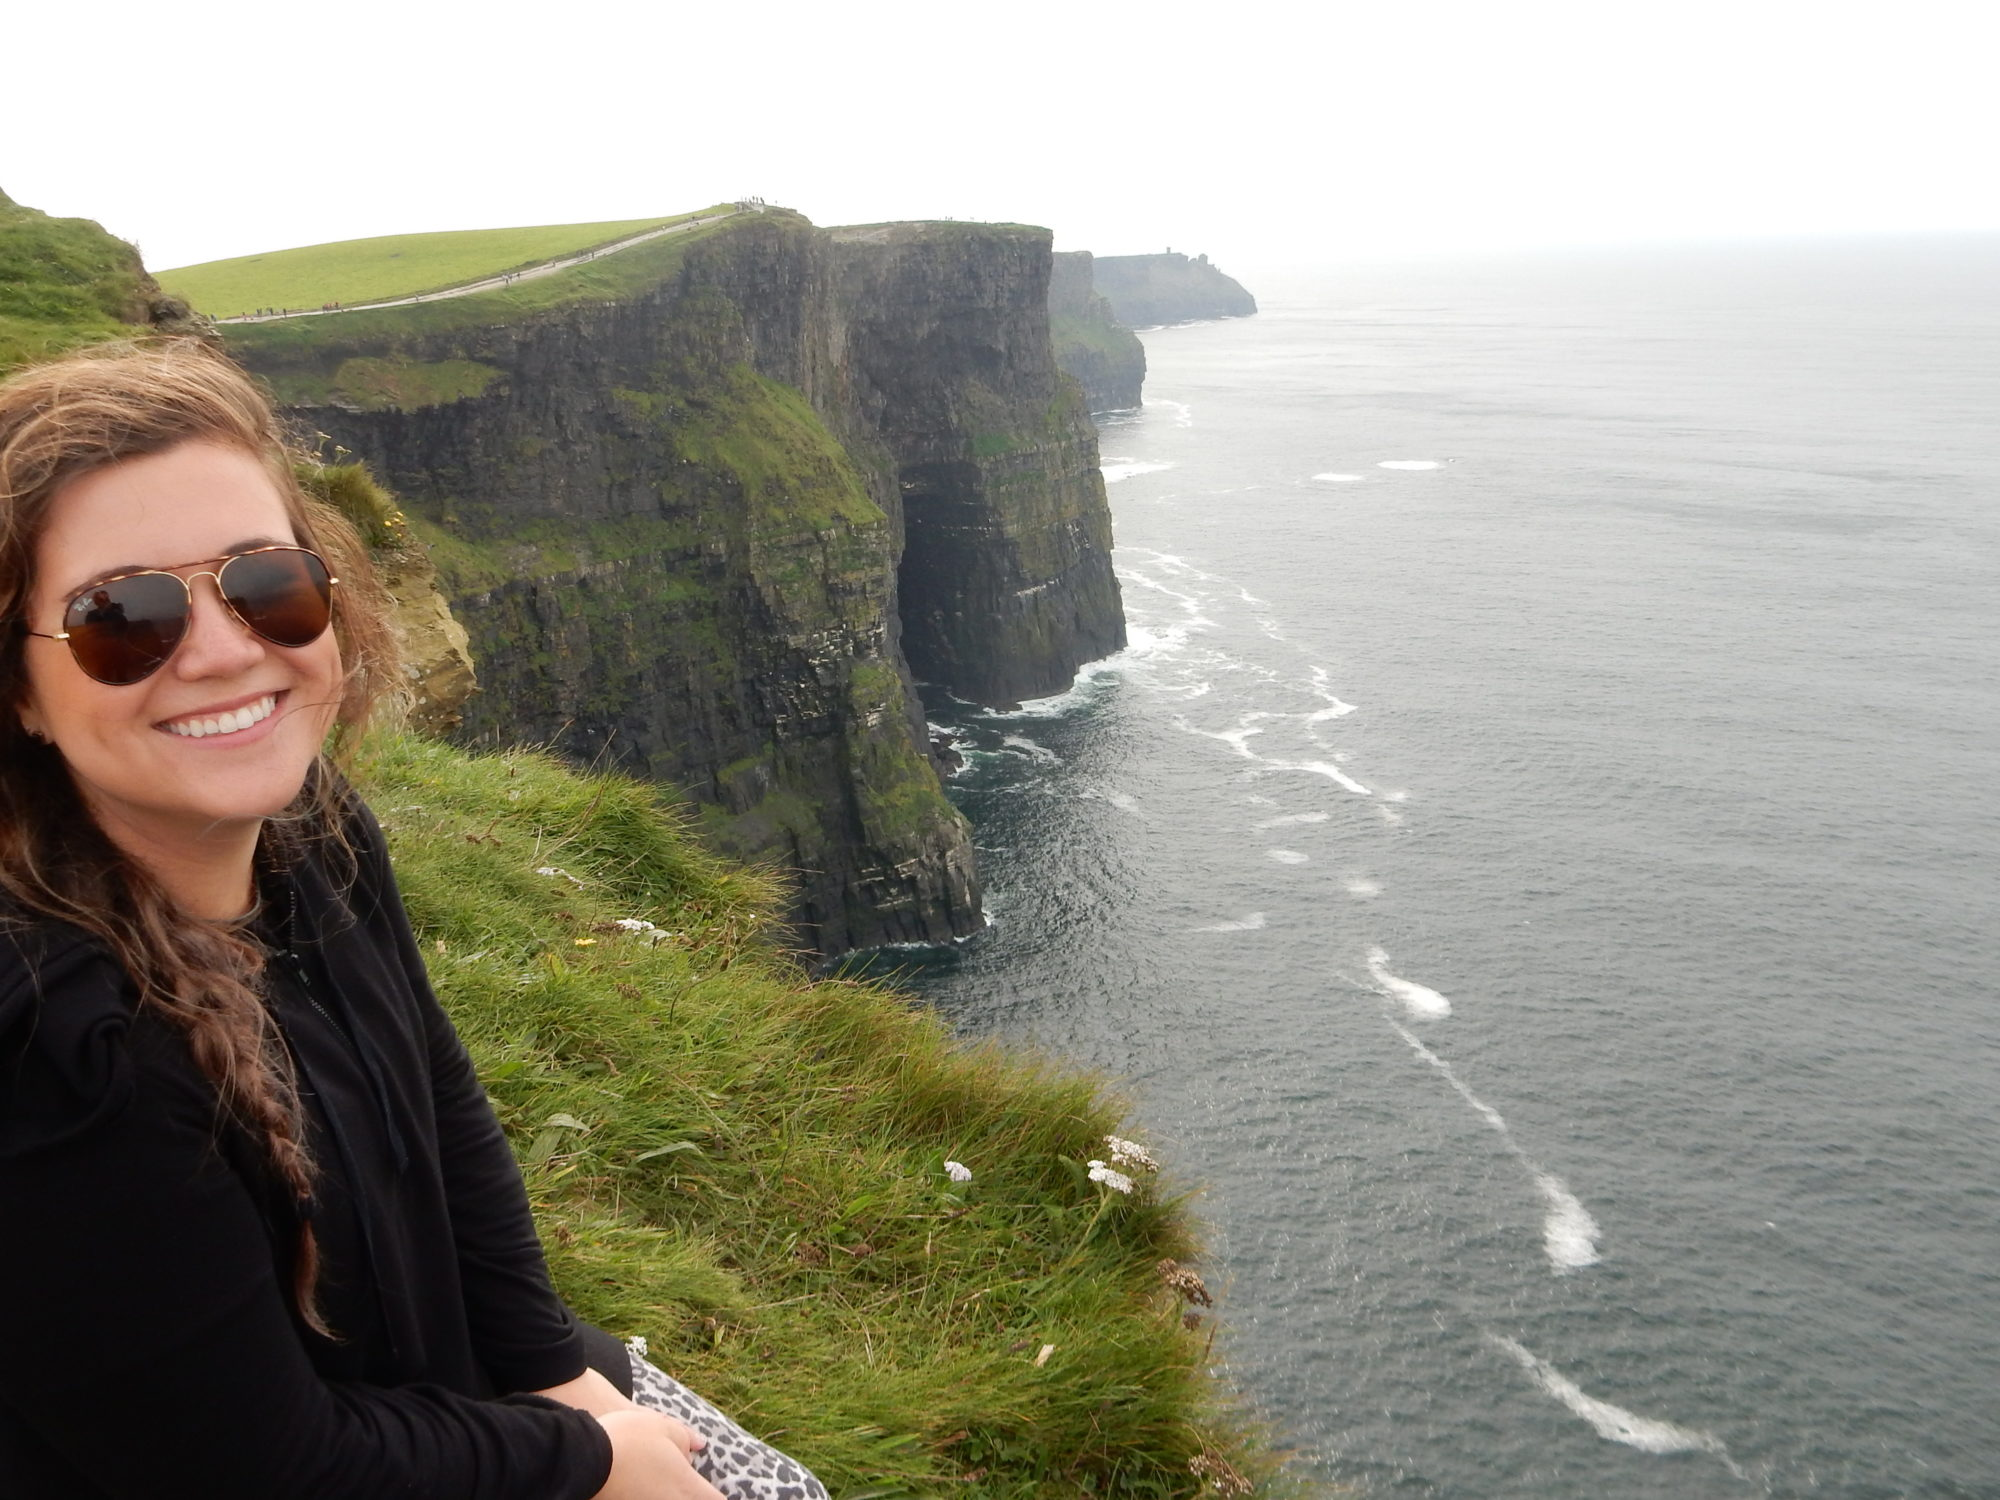 Gabbing with Globetrotters: Sara from Sara Sees, an Expat in Dublin